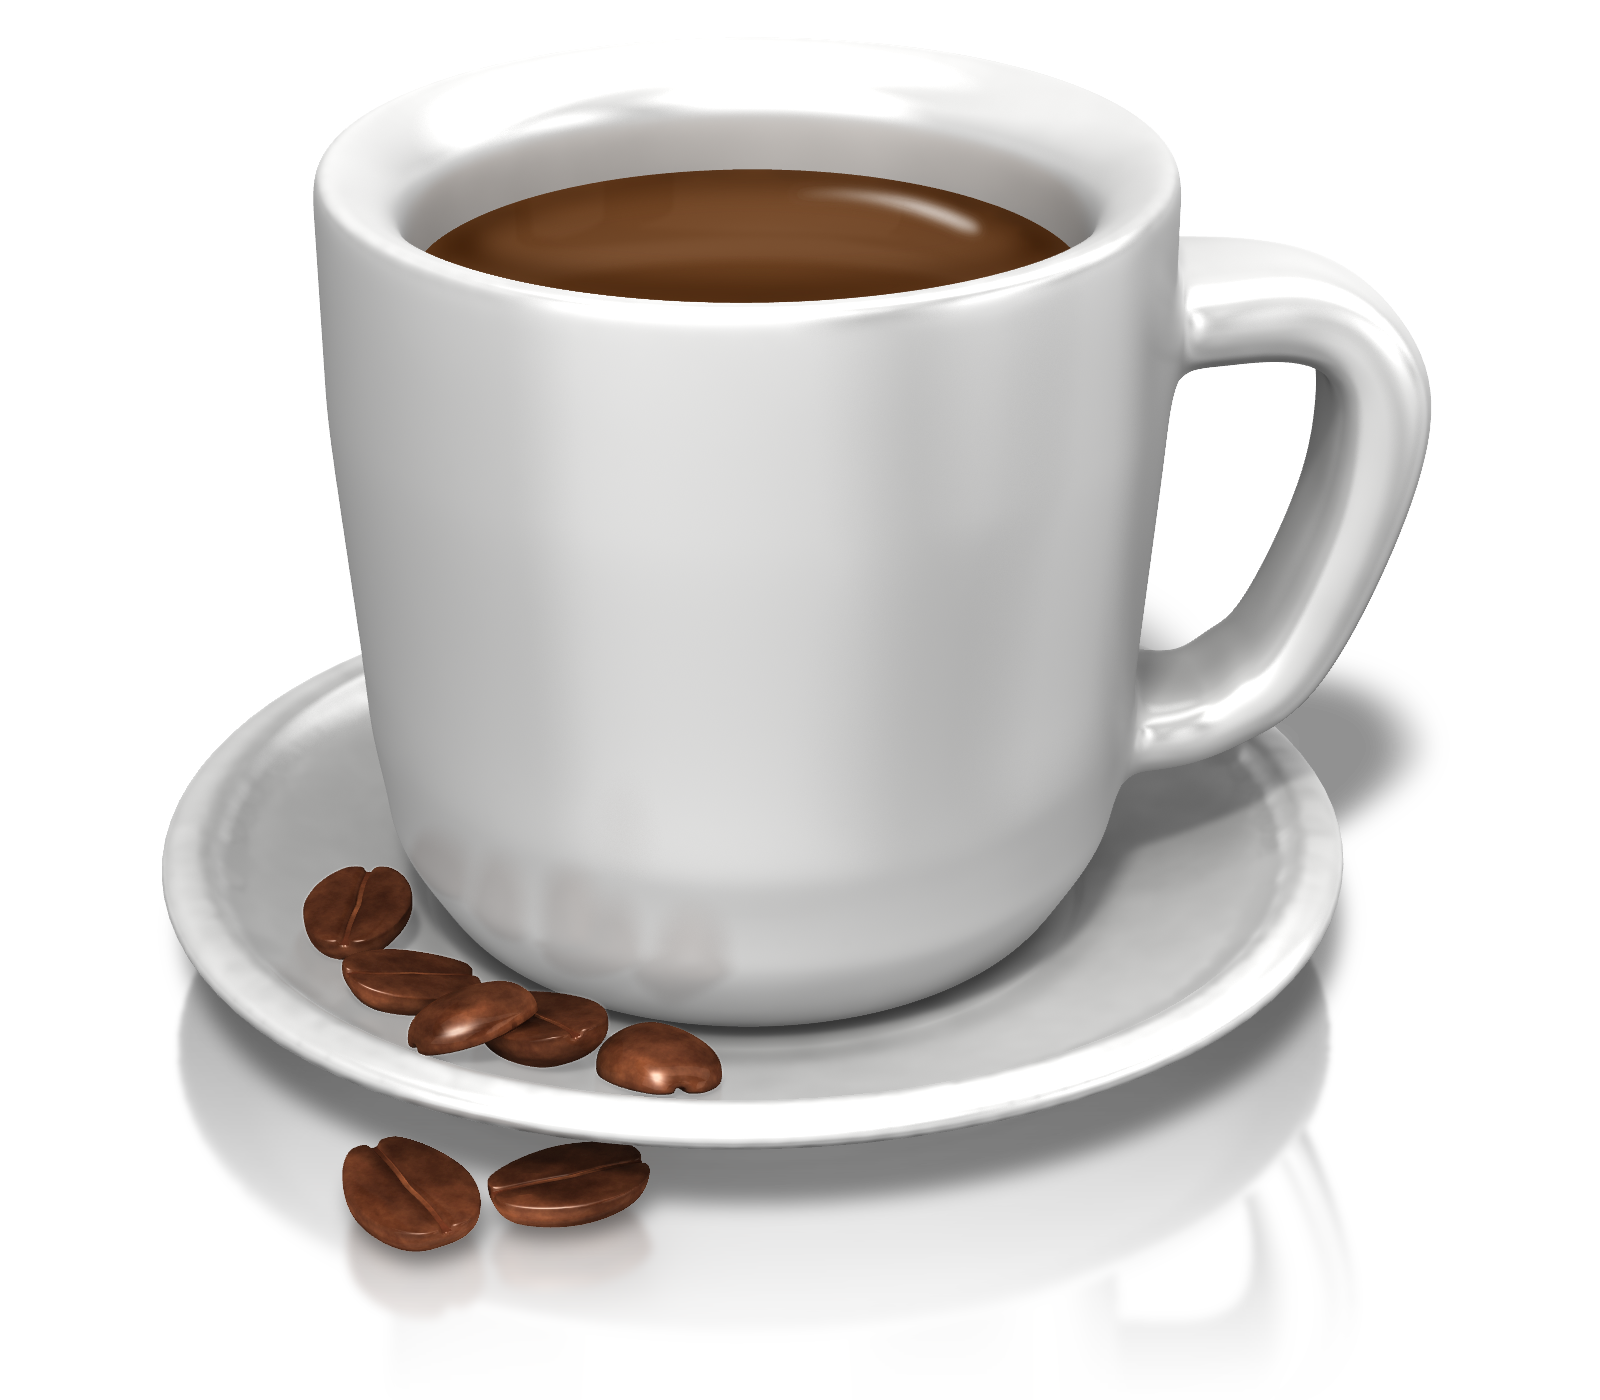 Coffee Cup Png Transparent Image - Coffee, Transparent background PNG HD thumbnail